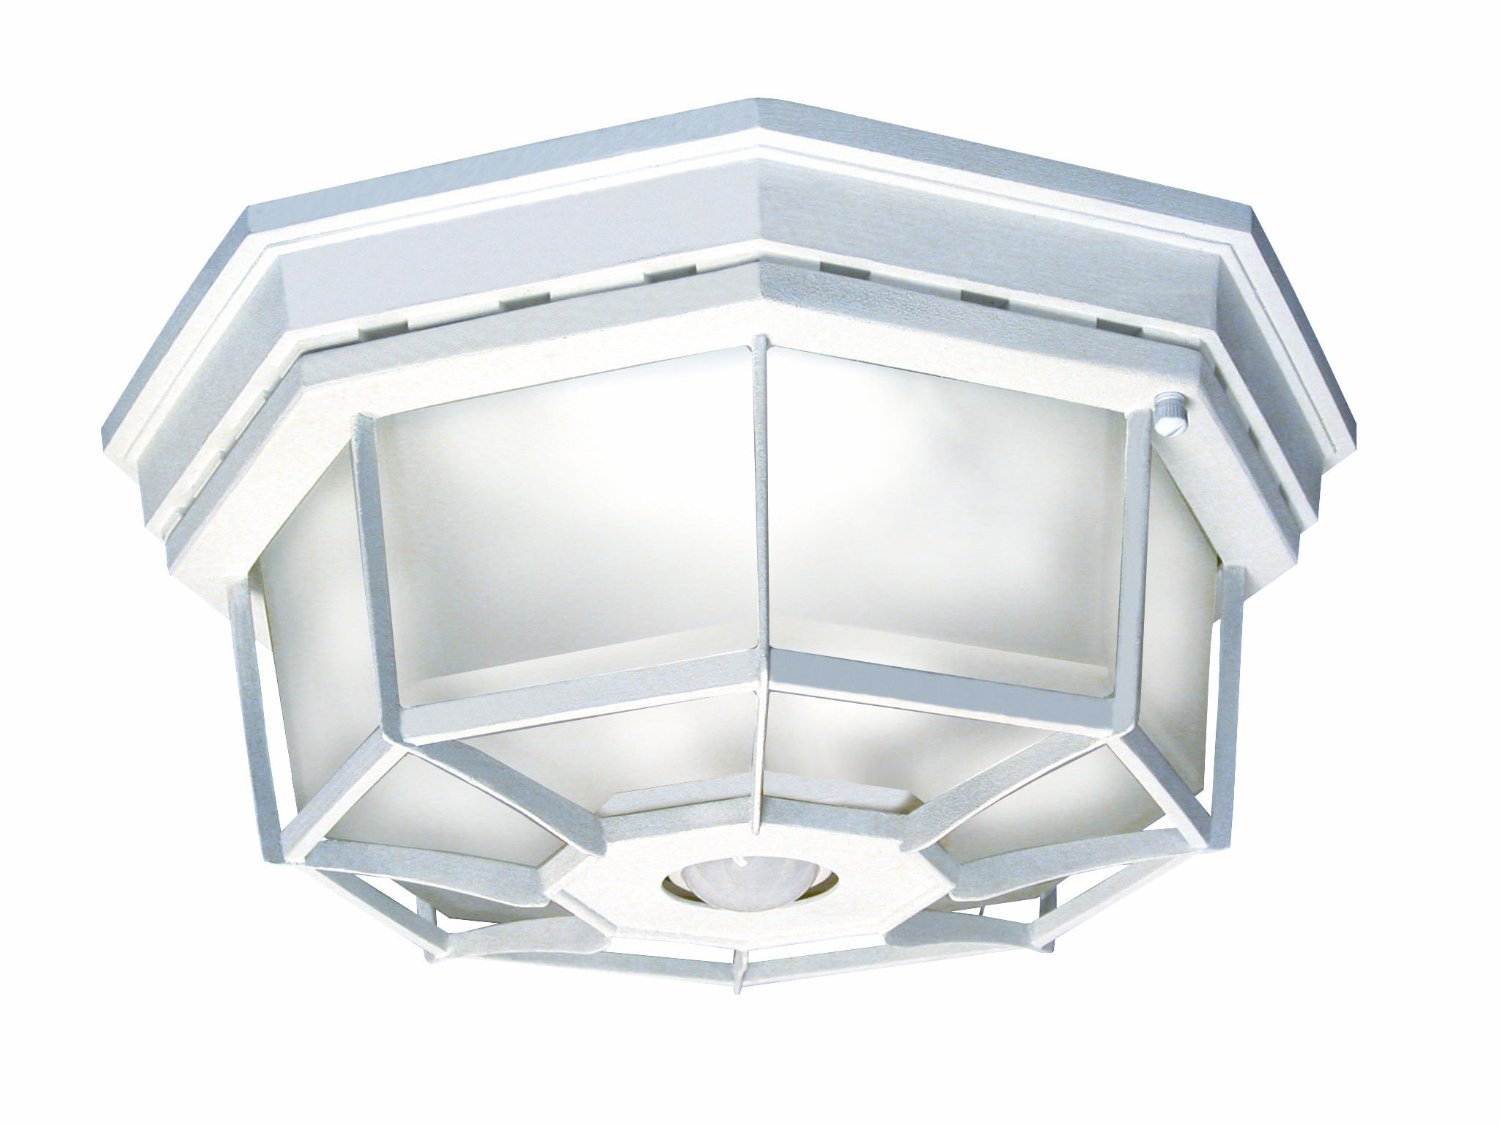 indoor-motion-sensor-ceiling-light-photo-11